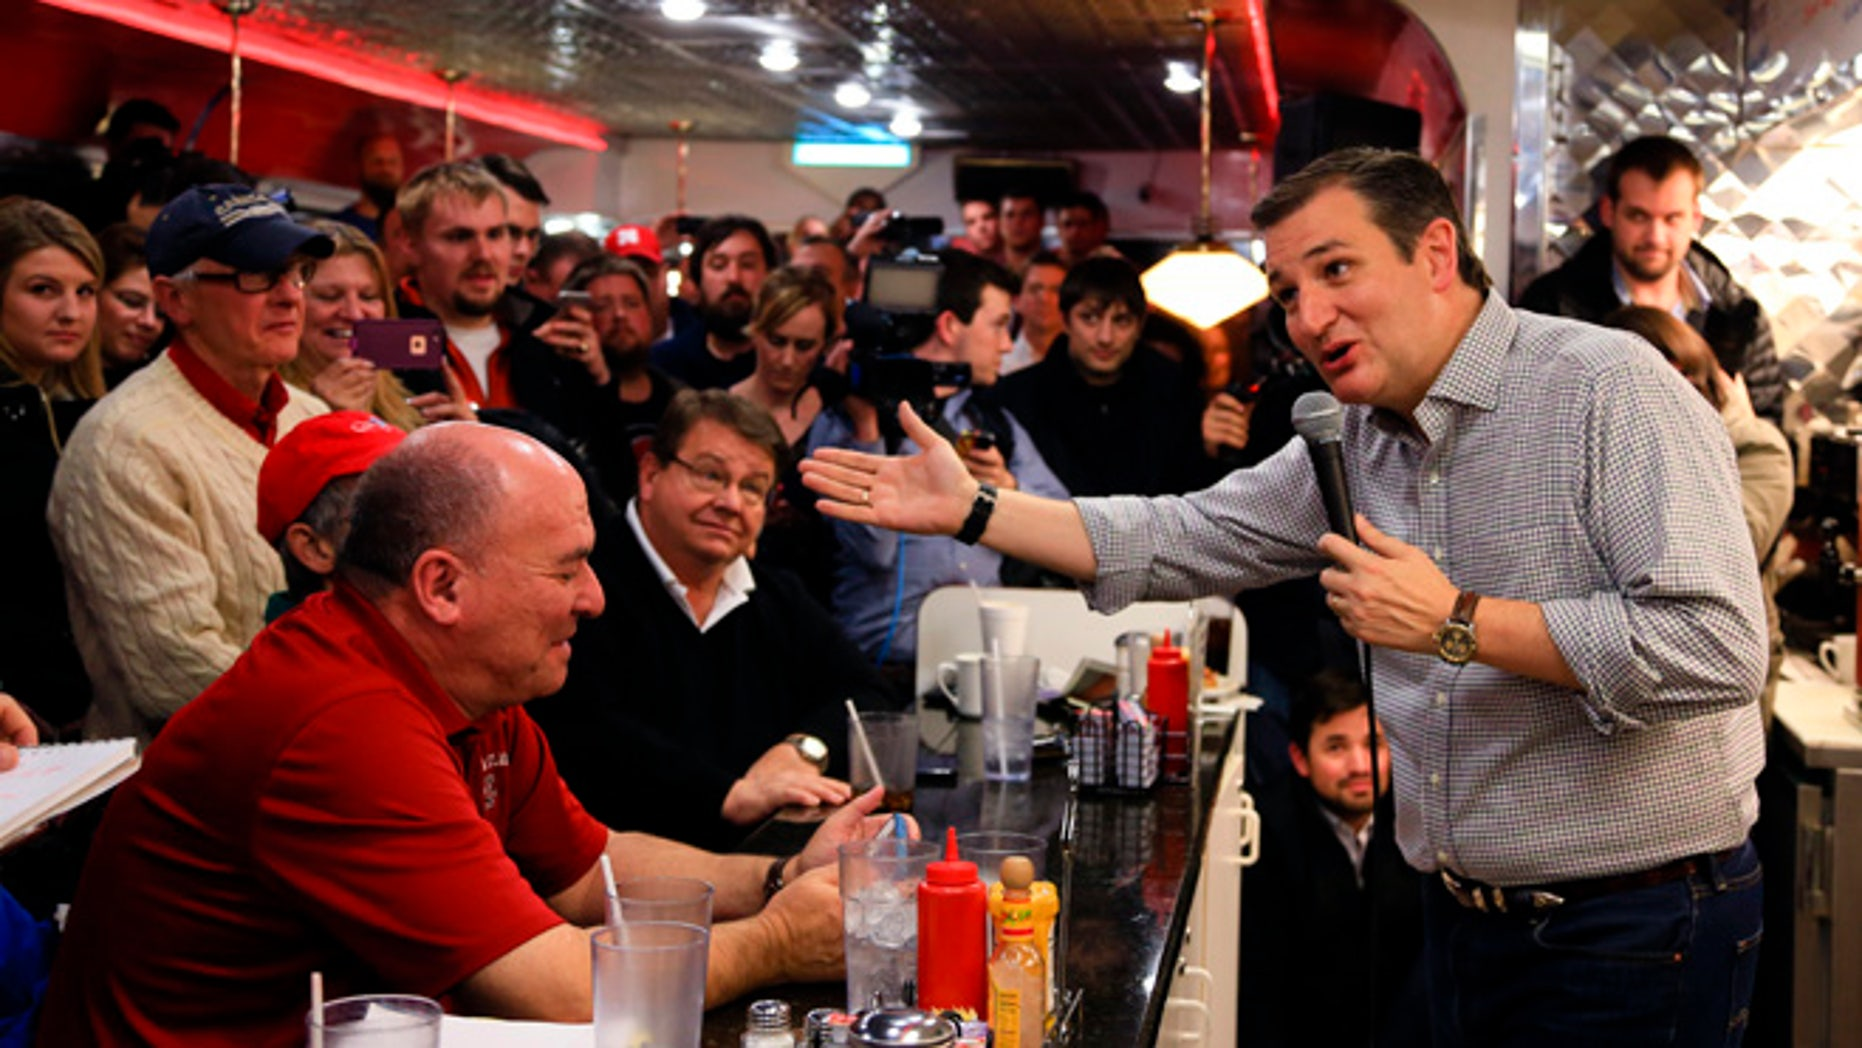 FILE - In this Jan 4, 2016 file photo, Republican Presidential candidate, Sen. Ted Cruz, R-Texas, campaigns at Penny's Diner in Missouri Valley, Iowa. Cruz and Marco Rubio are fighting for the favor of many of the same undecided voters across Iowa, where even some of the most attentive Republicans say they canât make up their minds less than four weeks before voting begins. (AP Photo/Nati Harnik, File)